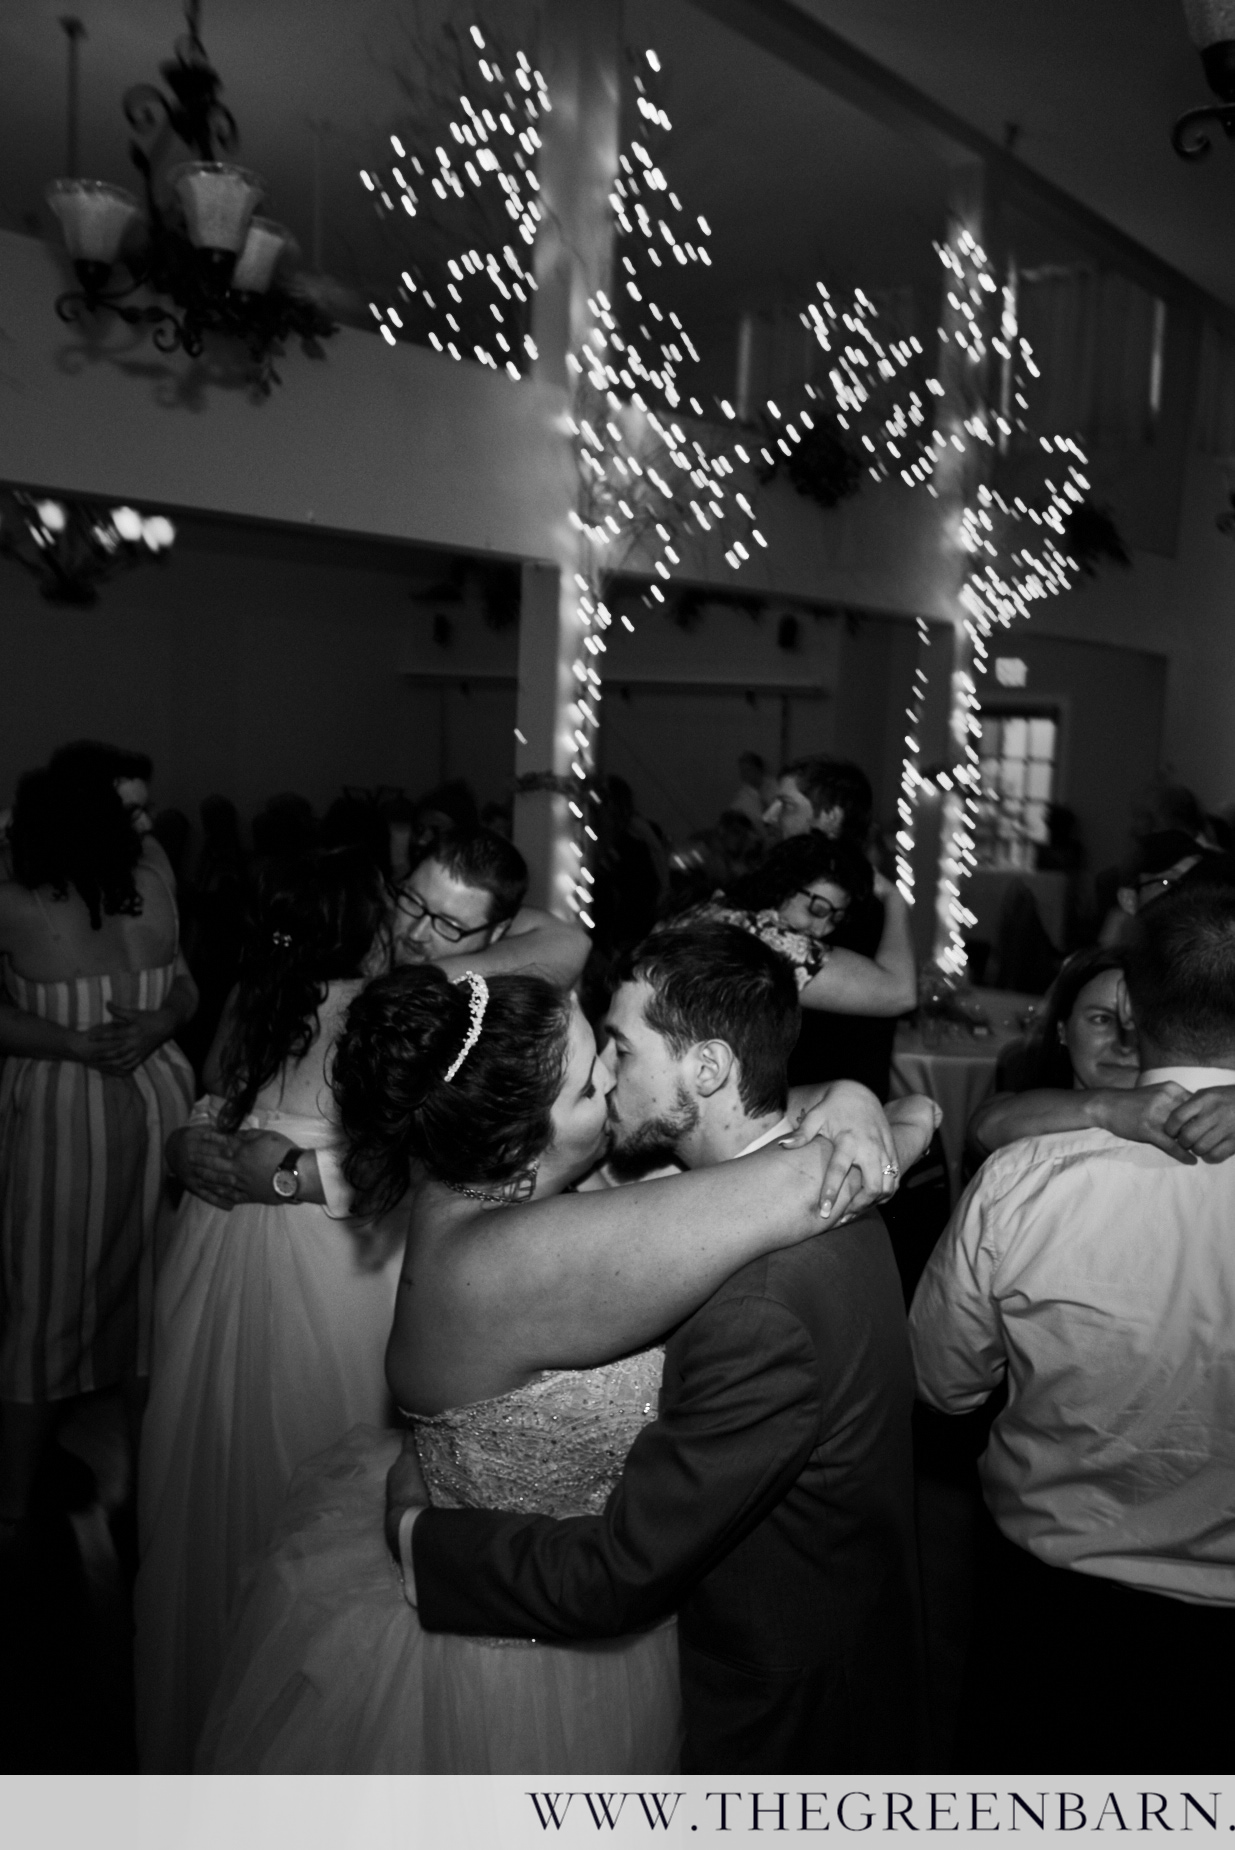 Bride and Groom Dance Black and White Photo Kissing on Dance Floor Surrounded by Guests